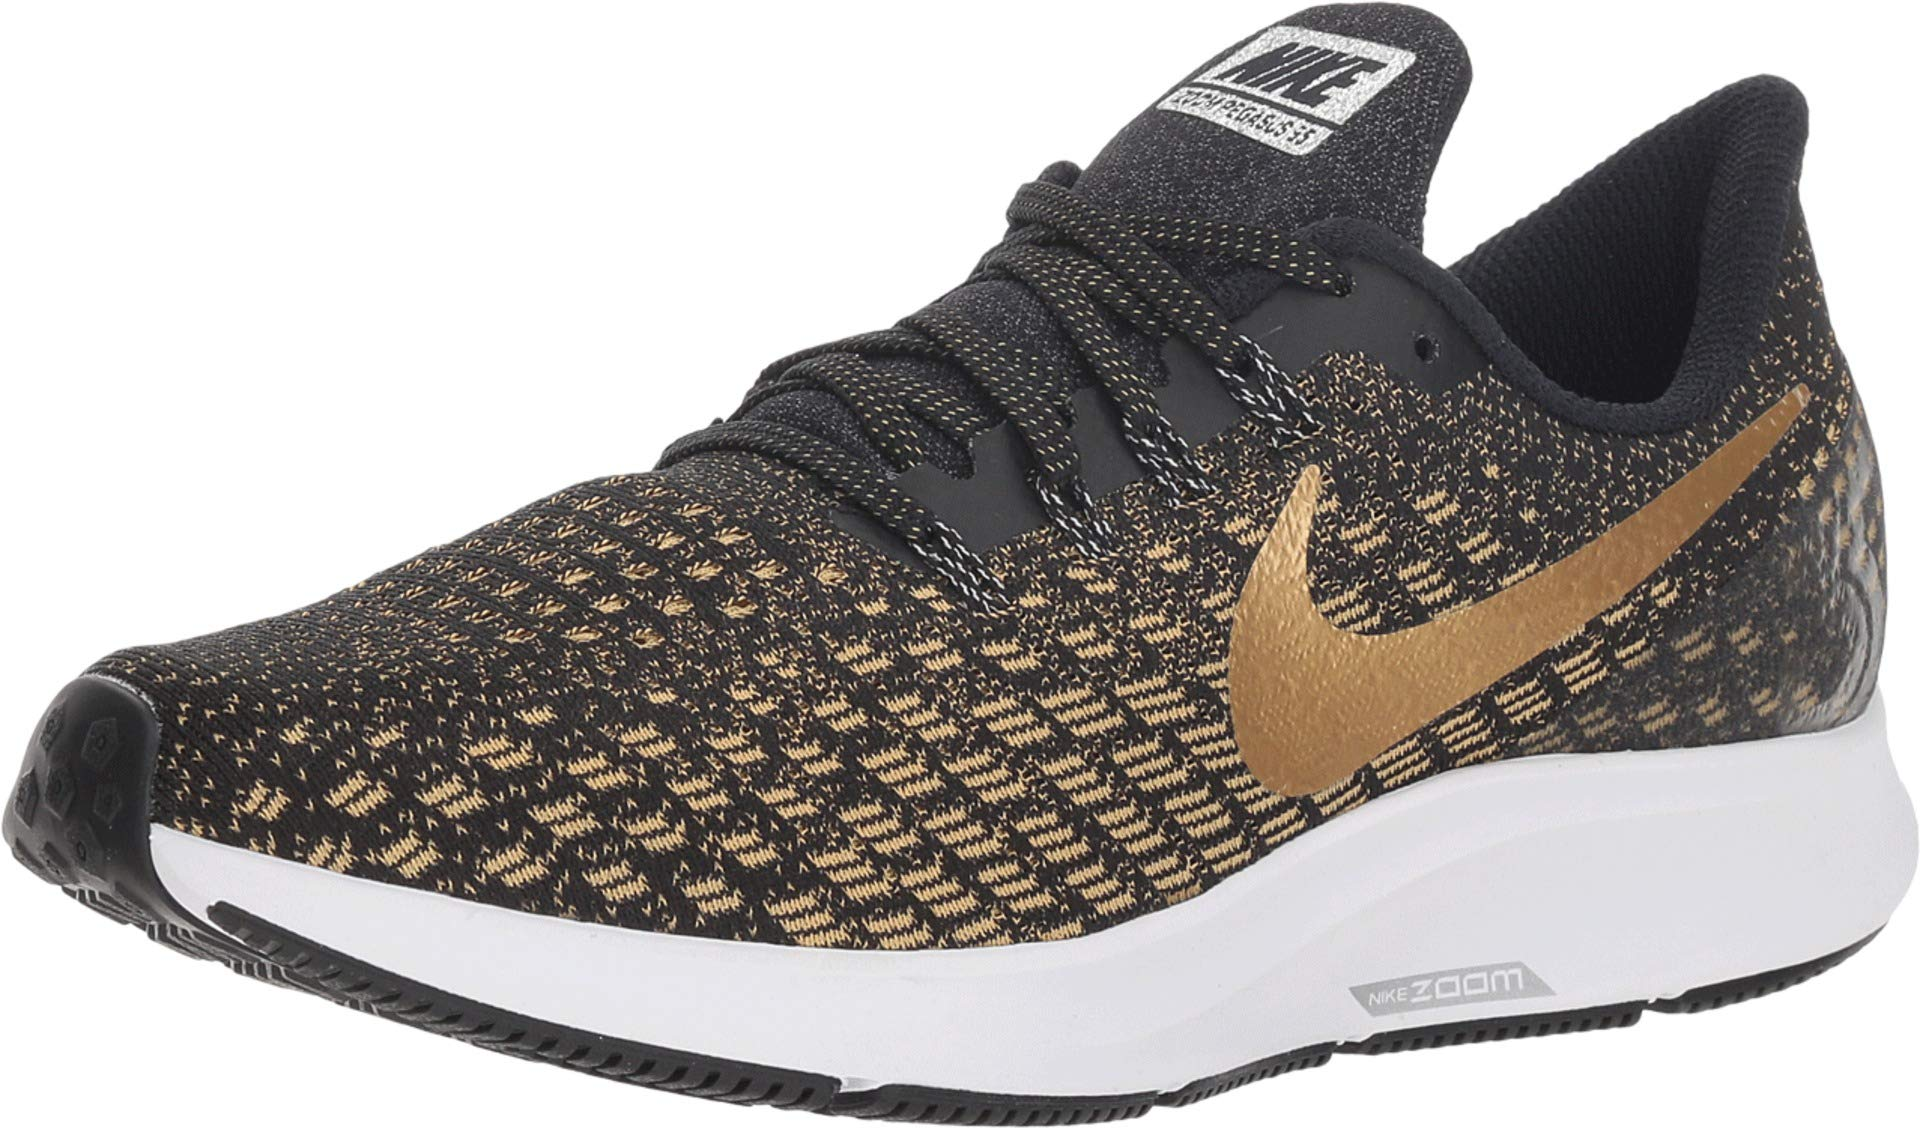 Nike Women's Zoom Pegasus 35 Running Shoe Black/Metallic Gold/Wheat Gold Size 5 M US by Nike (Image #1)